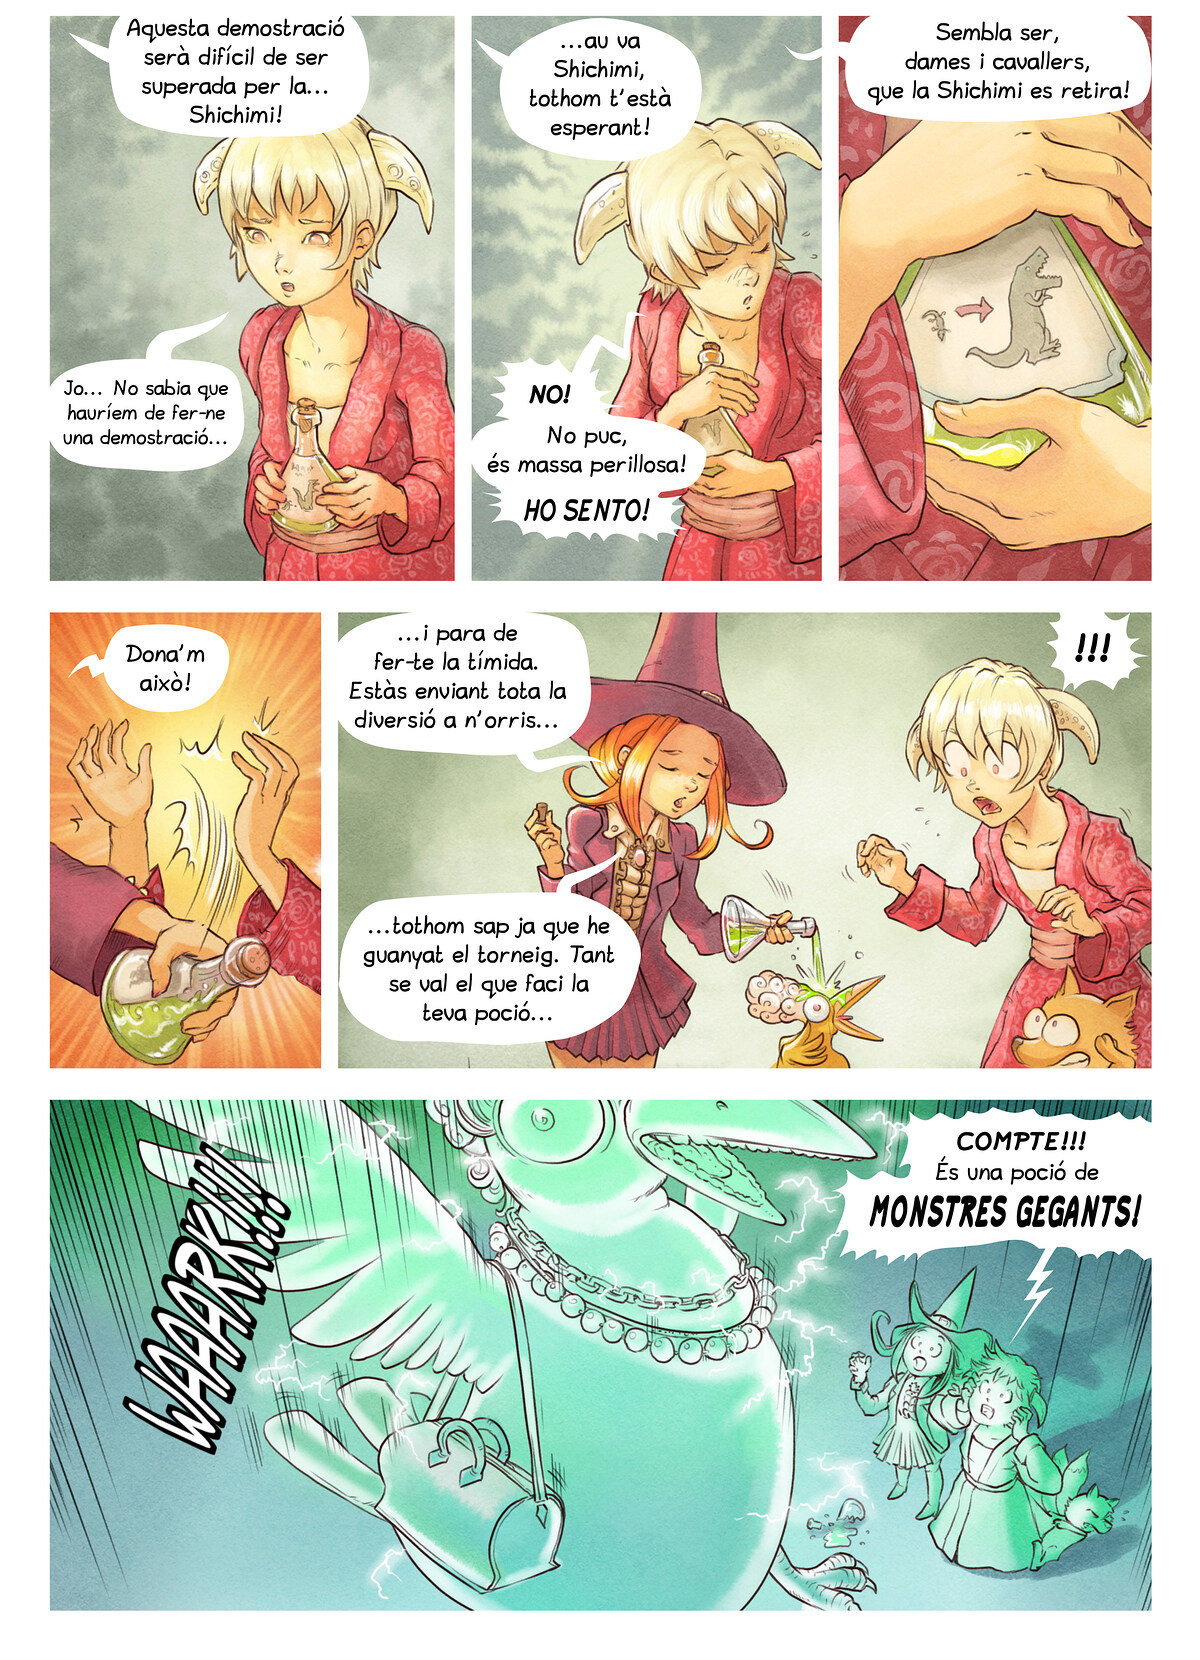 A webcomic page of Pepper&Carrot, episodi 6 [ca], pàgina 6